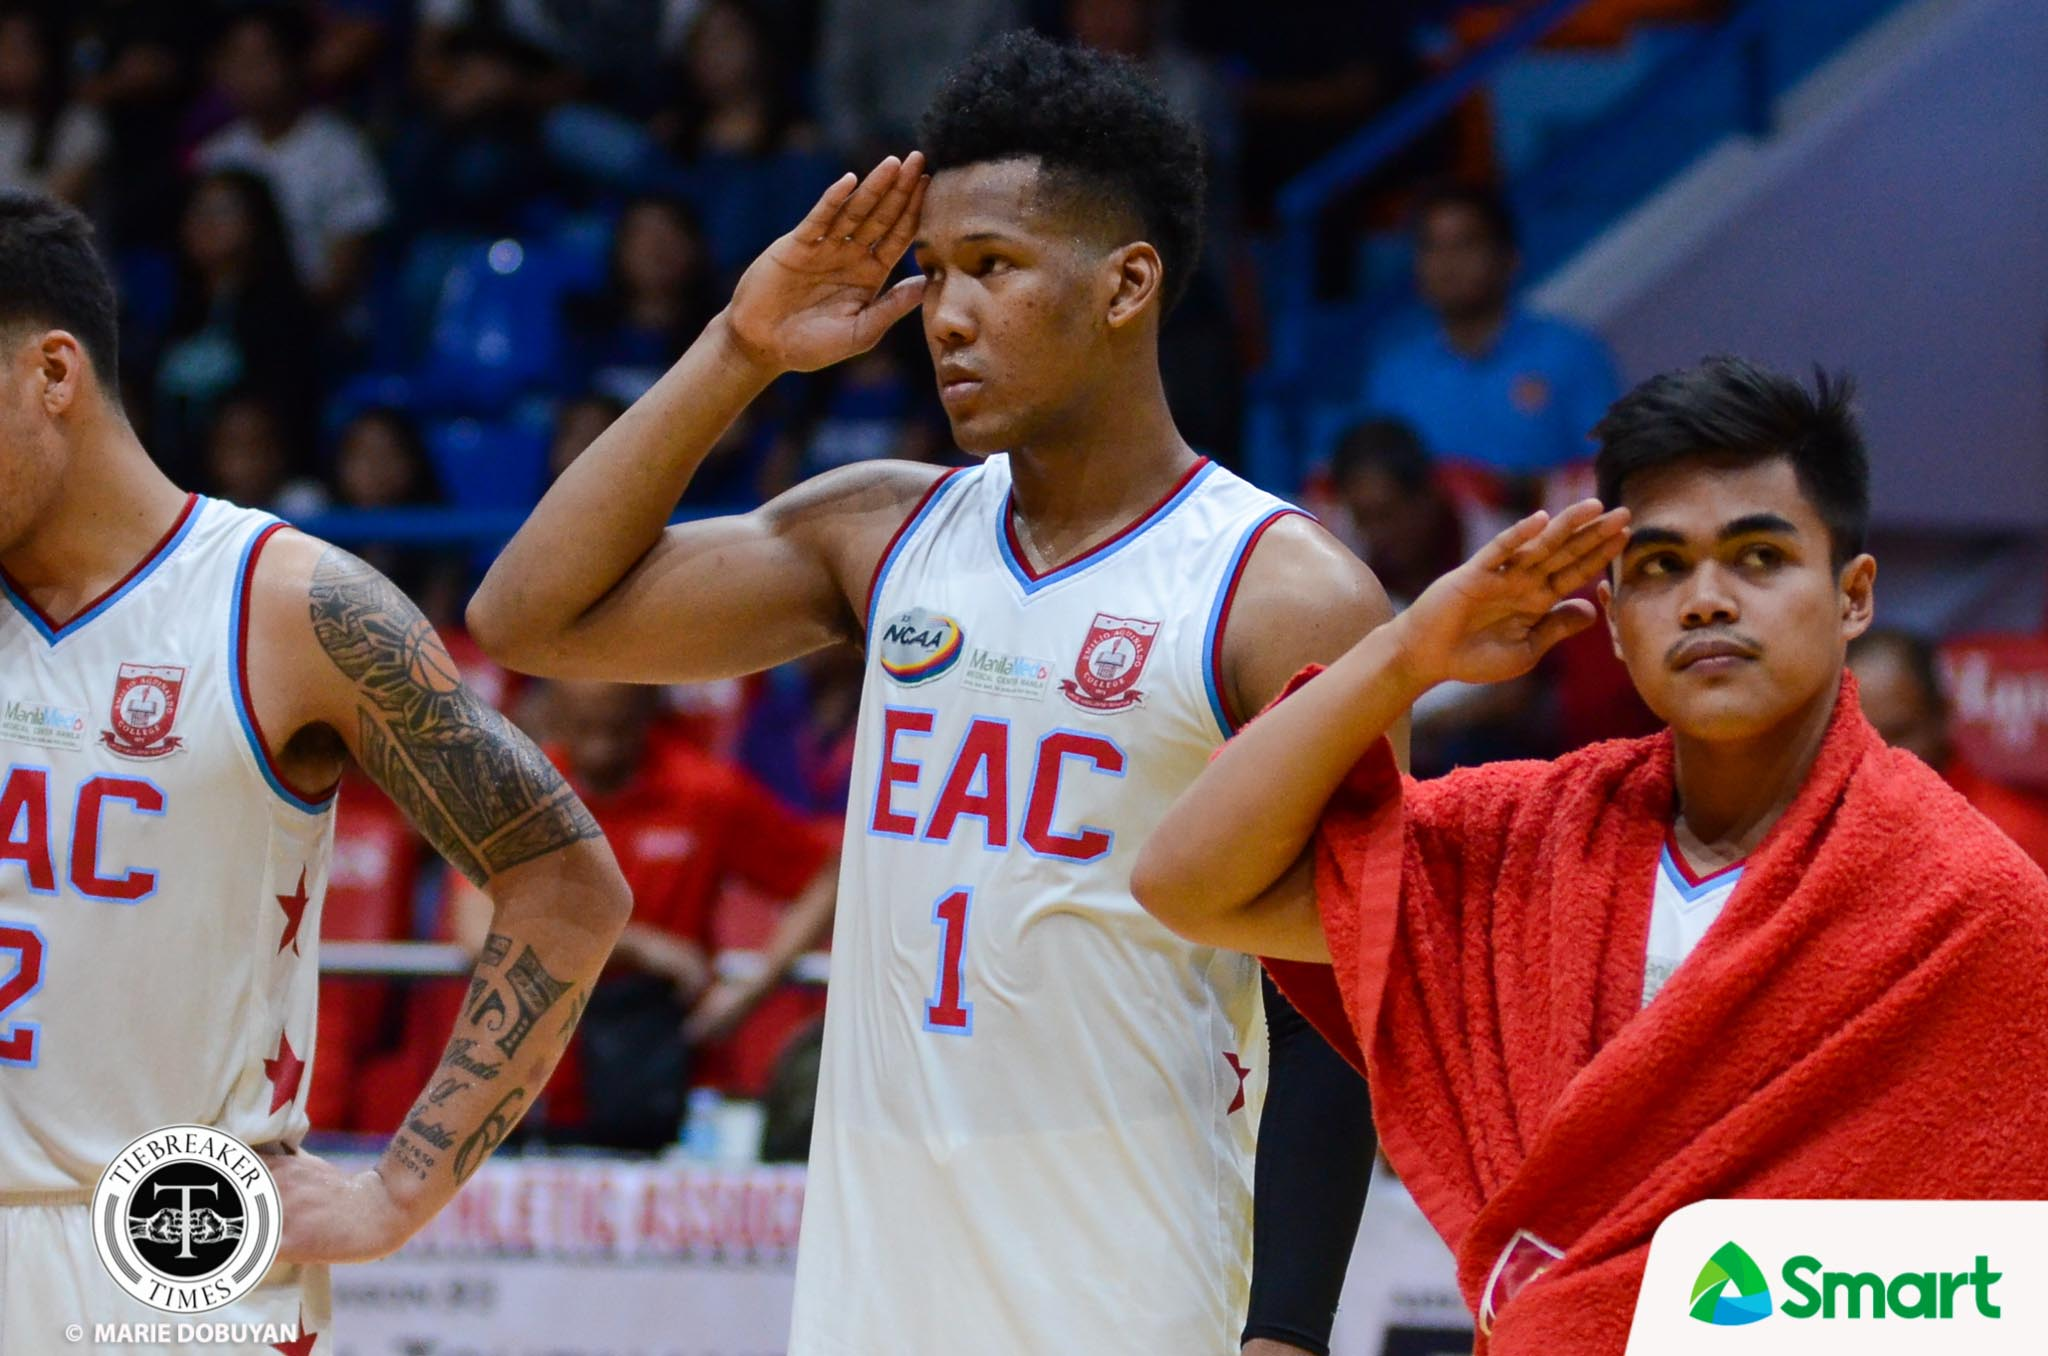 Philippine Sports News - Tiebreaker Times Sidney Onwubere savors final moment as a General Basketball EAC NCAA News  Sidney Onwubere NCAA Season 93 Seniors Basketball NCAA Season 93 EAC Seniors Basketball